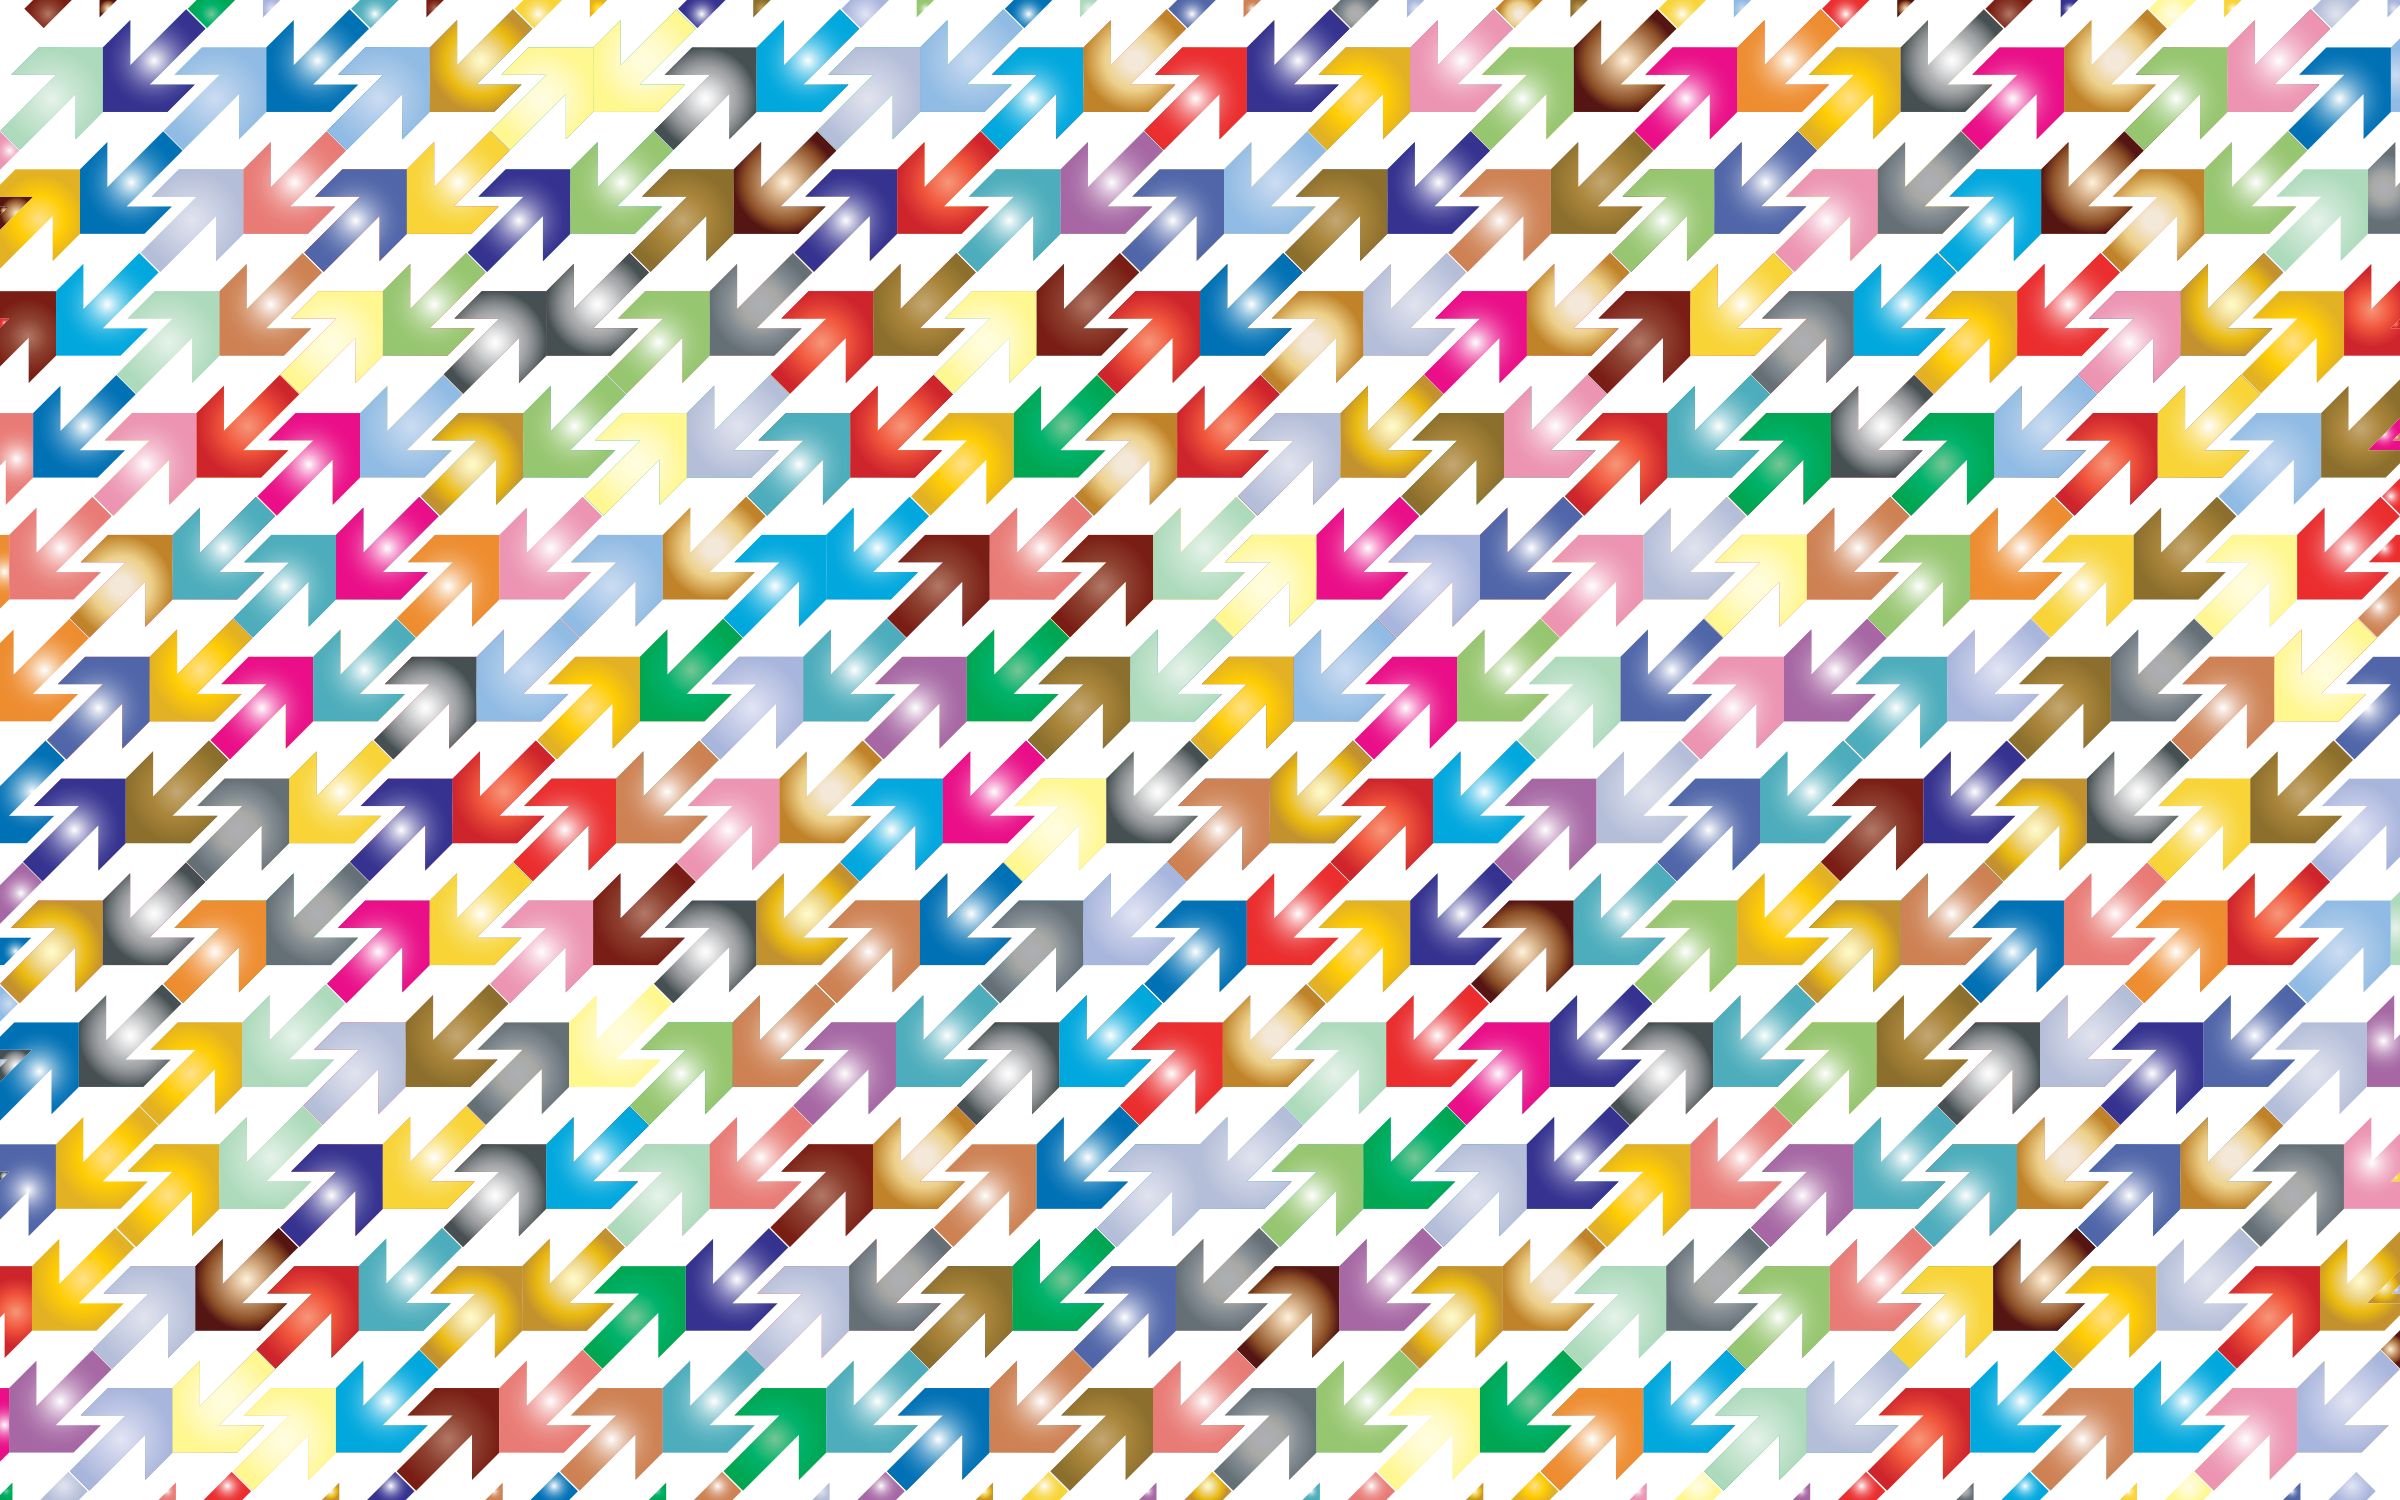 Prismatic Abstract Arrows Pattern 2 by GDJ